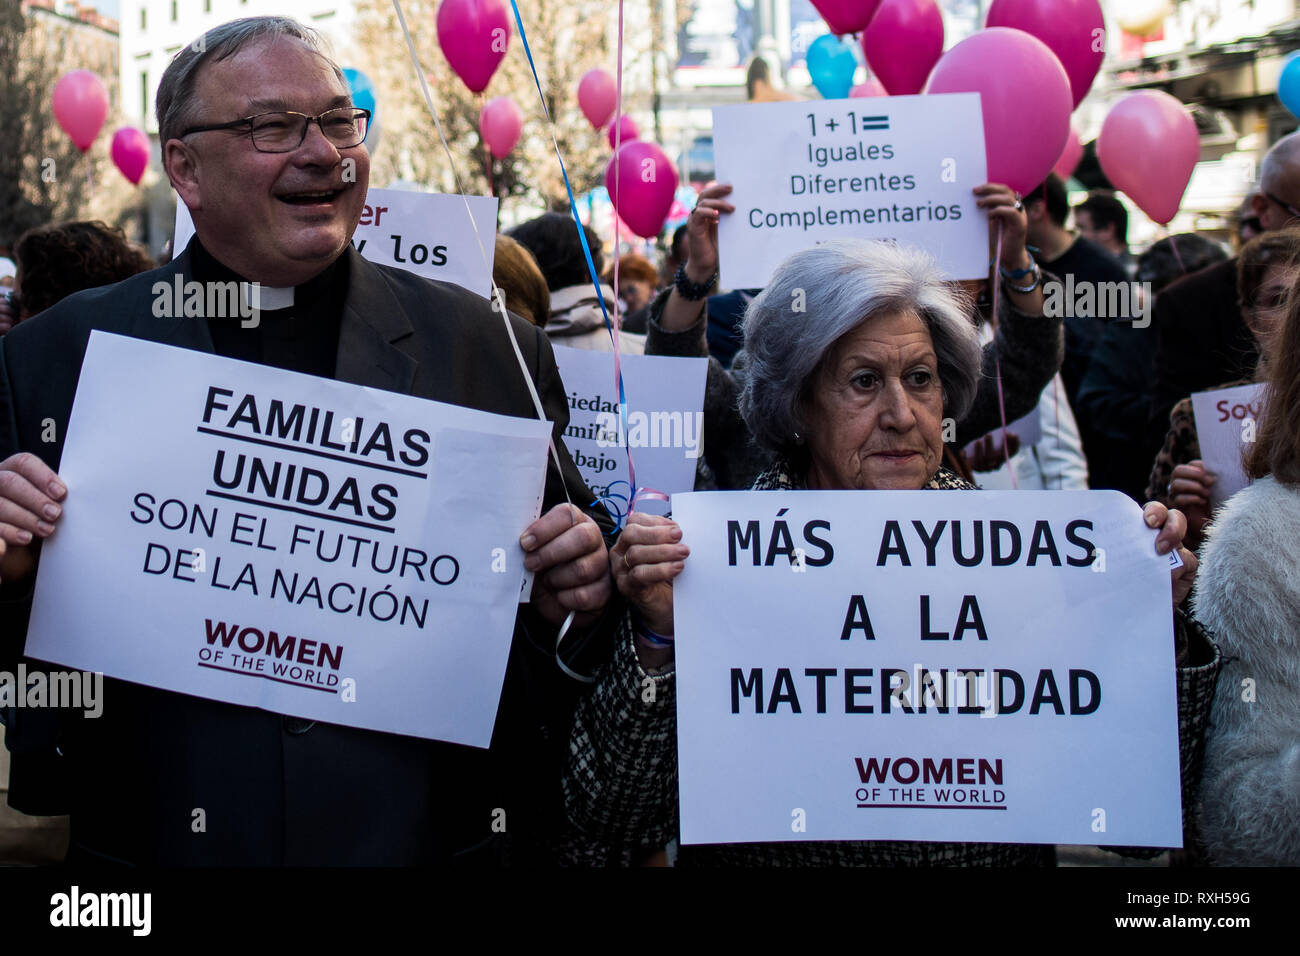 Madrid, Spain. 10th March, 2019. A priest protesting with a placard that reads 'United families are the future of the nation'. Conservative, far right wing and ultra Catholic groups demonstrate under the slogan 'In feminine yes, and masculine too' in a march organized by the platform 'Women of the World'. The protest against what they call 'supremacist feminism' is part of the activities of the International Women's Day. Credit: Marcos del Mazo/Alamy Live News - Stock Image